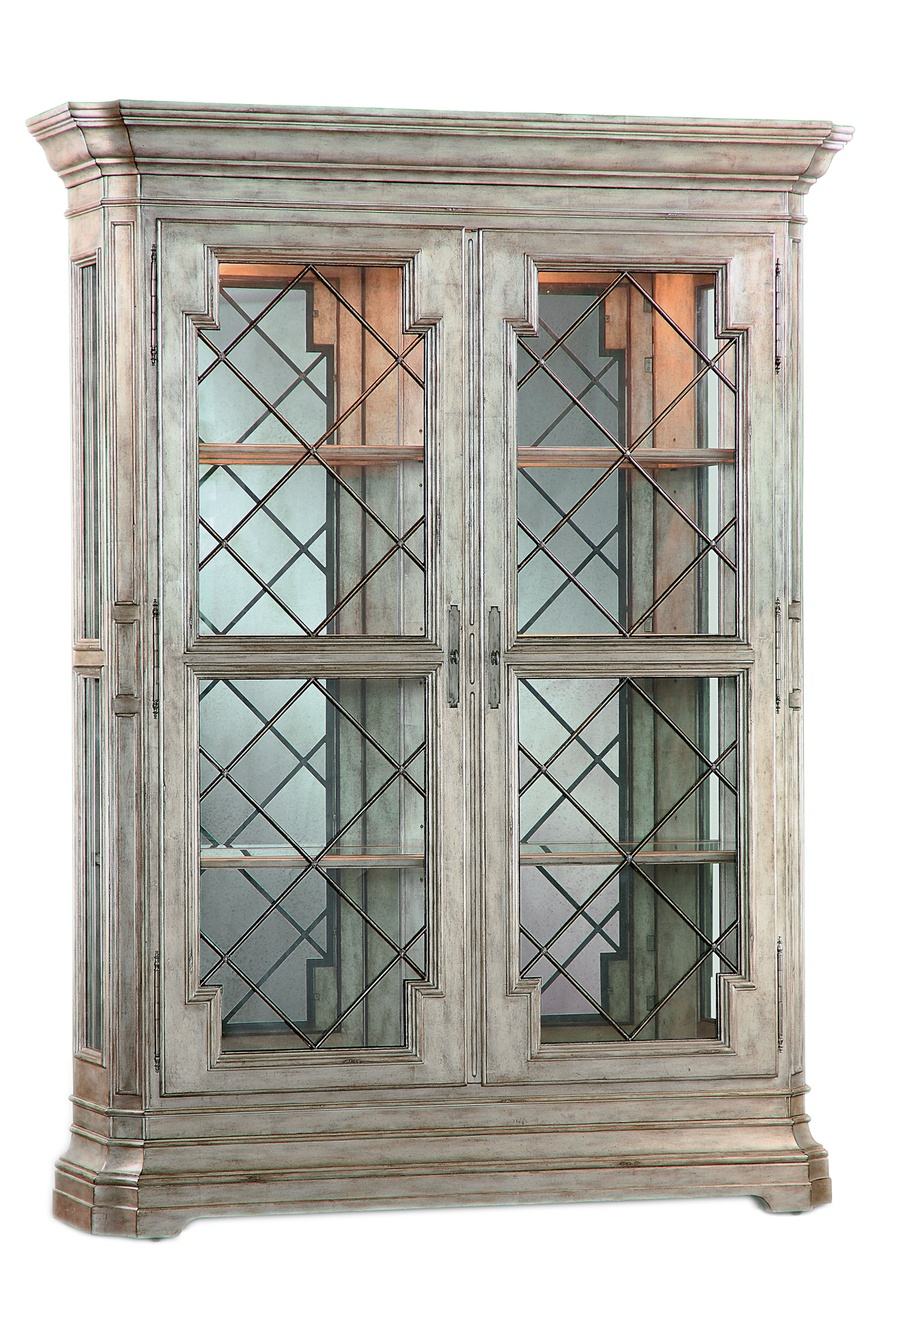 Rivoli Display Cabinet shown with:Silver Cloud finishDecorative metalwork in a signature metal finish withSilver Cloud Leaf finish trimAntique Mirror backAntique Nickel hardware